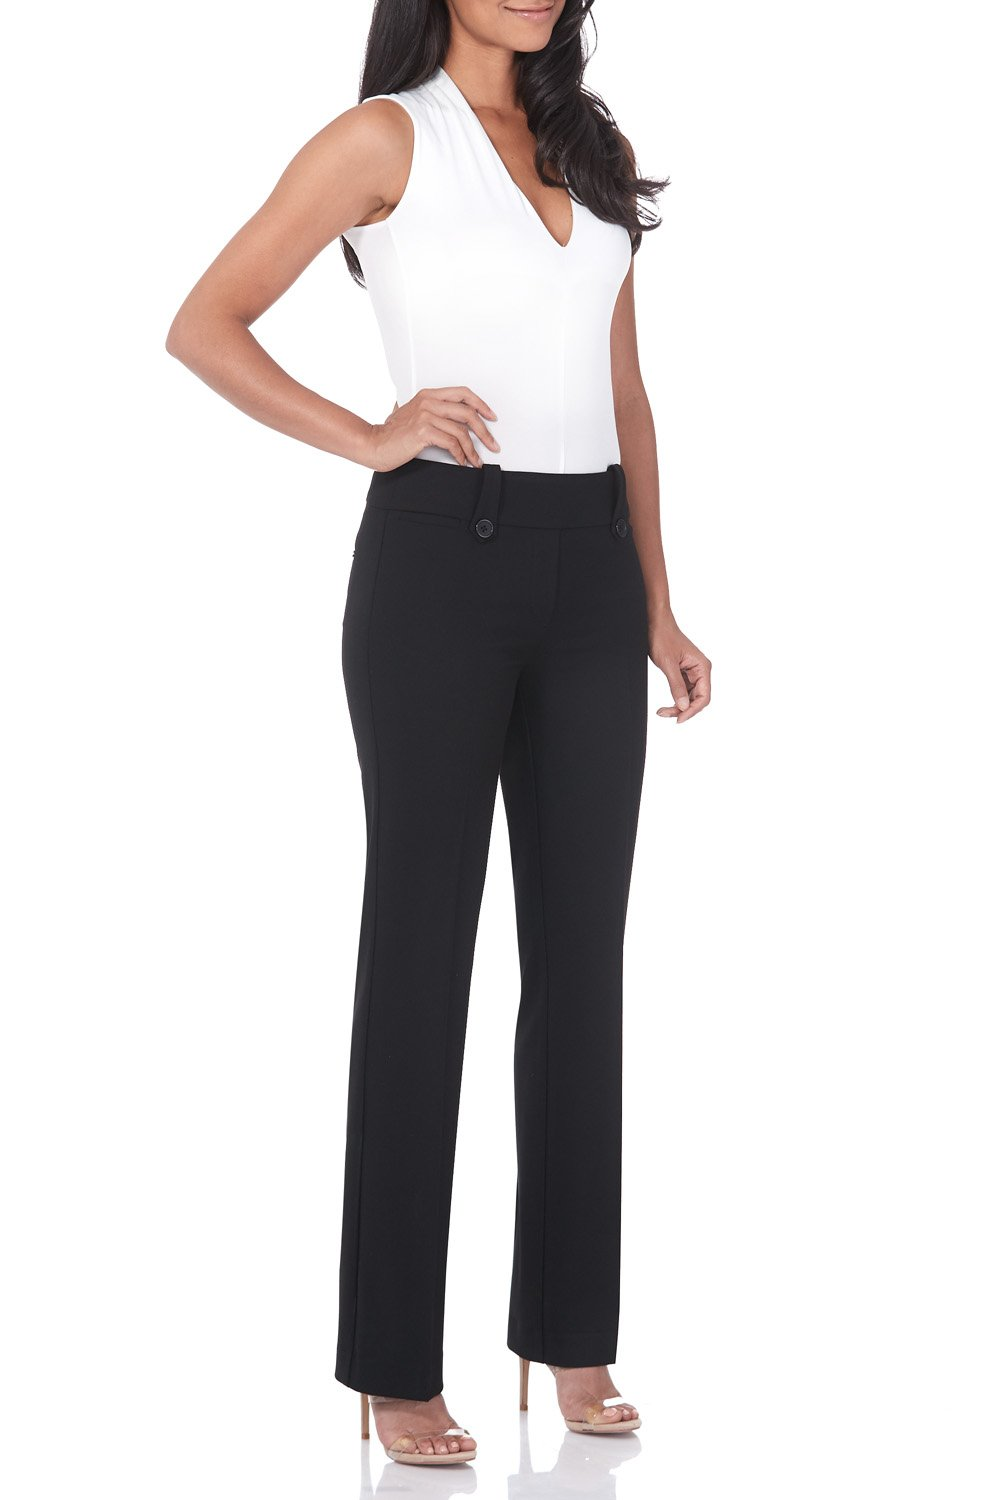 Rekucci Women's Smart Desk to Dinner Stretch Bootcut Pant w/Tummy Control (14,Black)